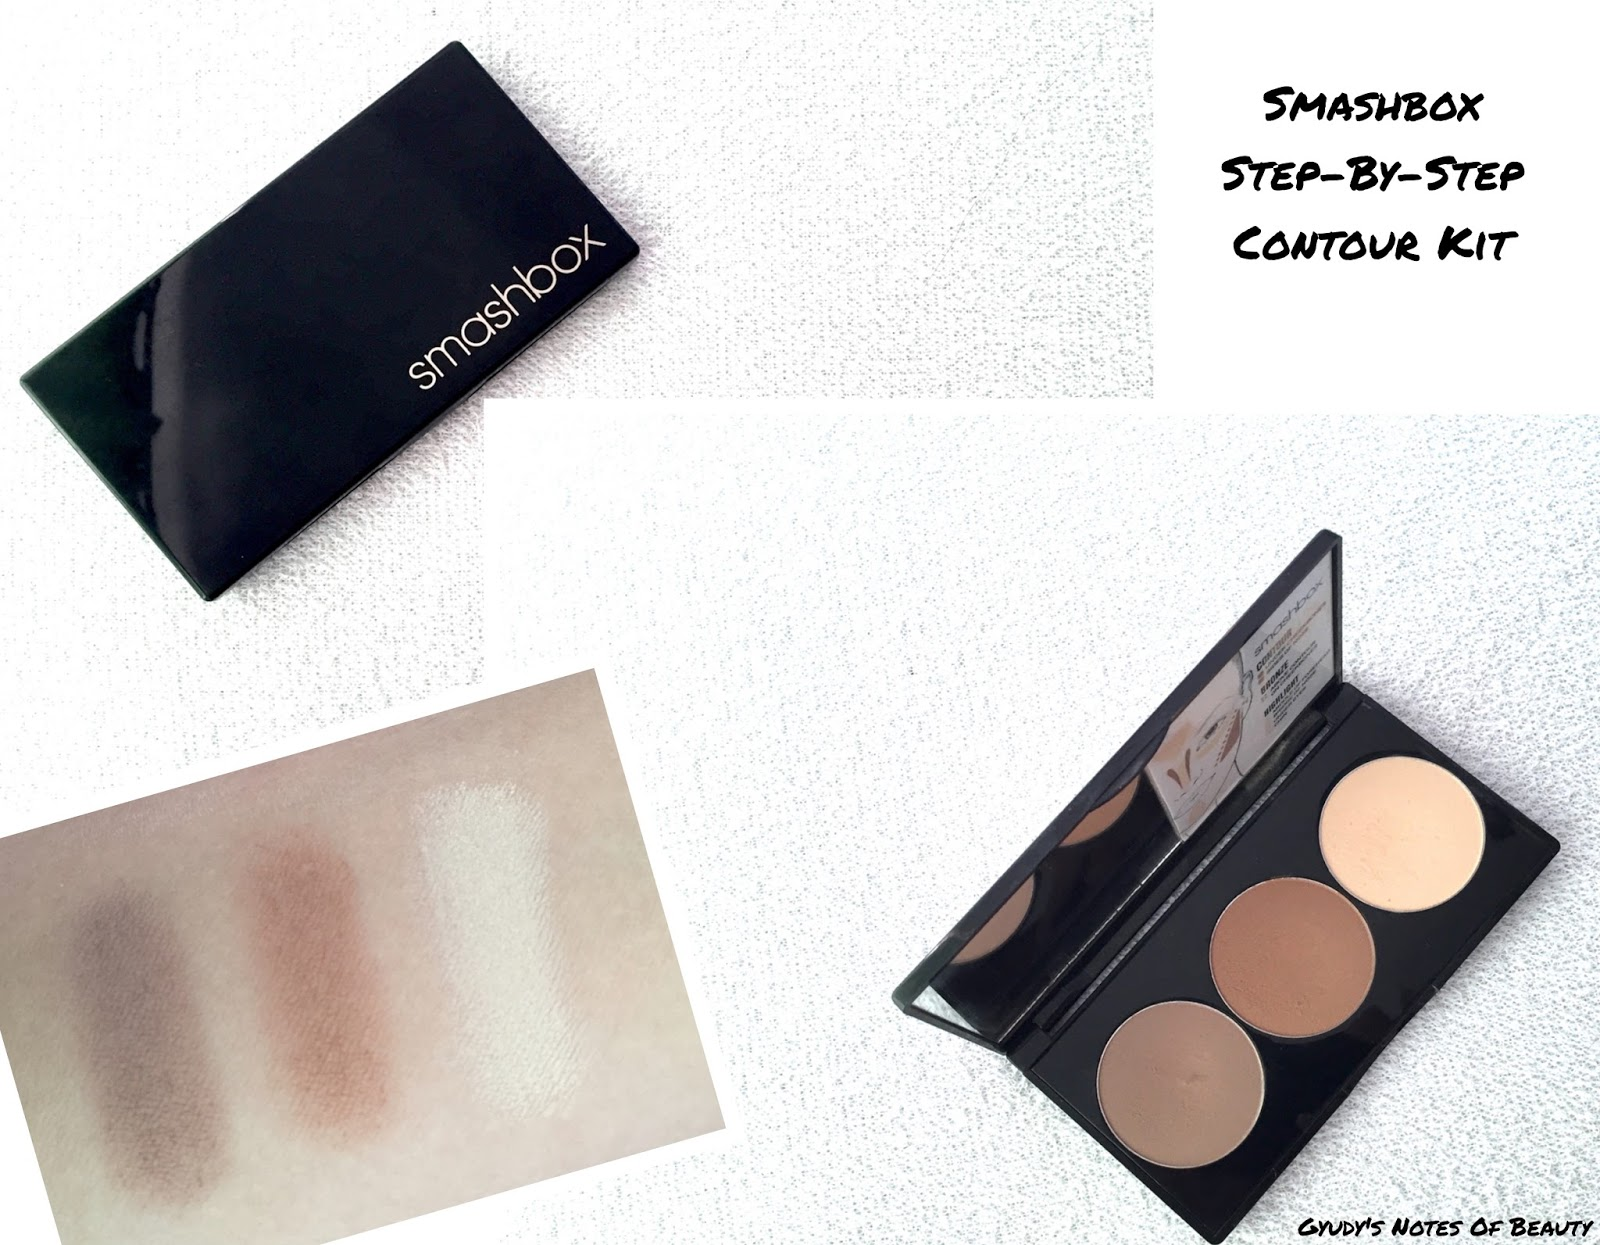 Smasbox Stepbystep Contour Kit Review And Swatches